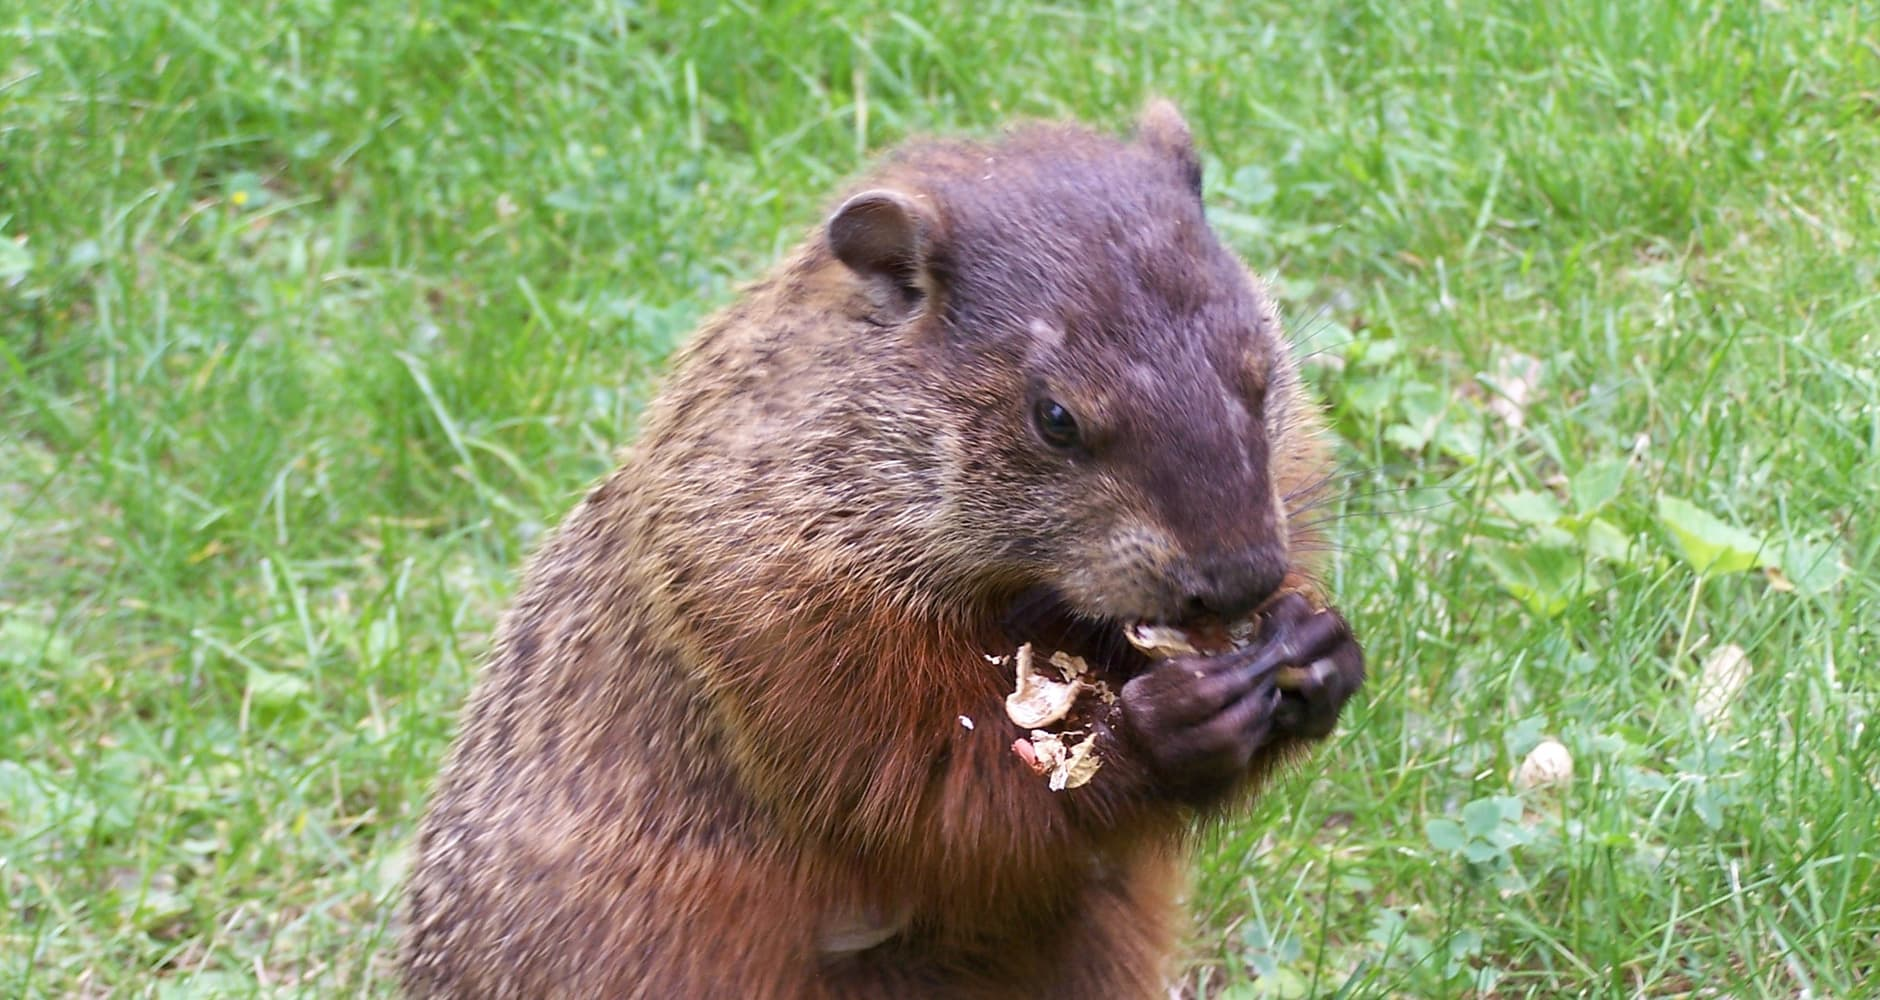 Pest of the Month: Groundhogsimage preview